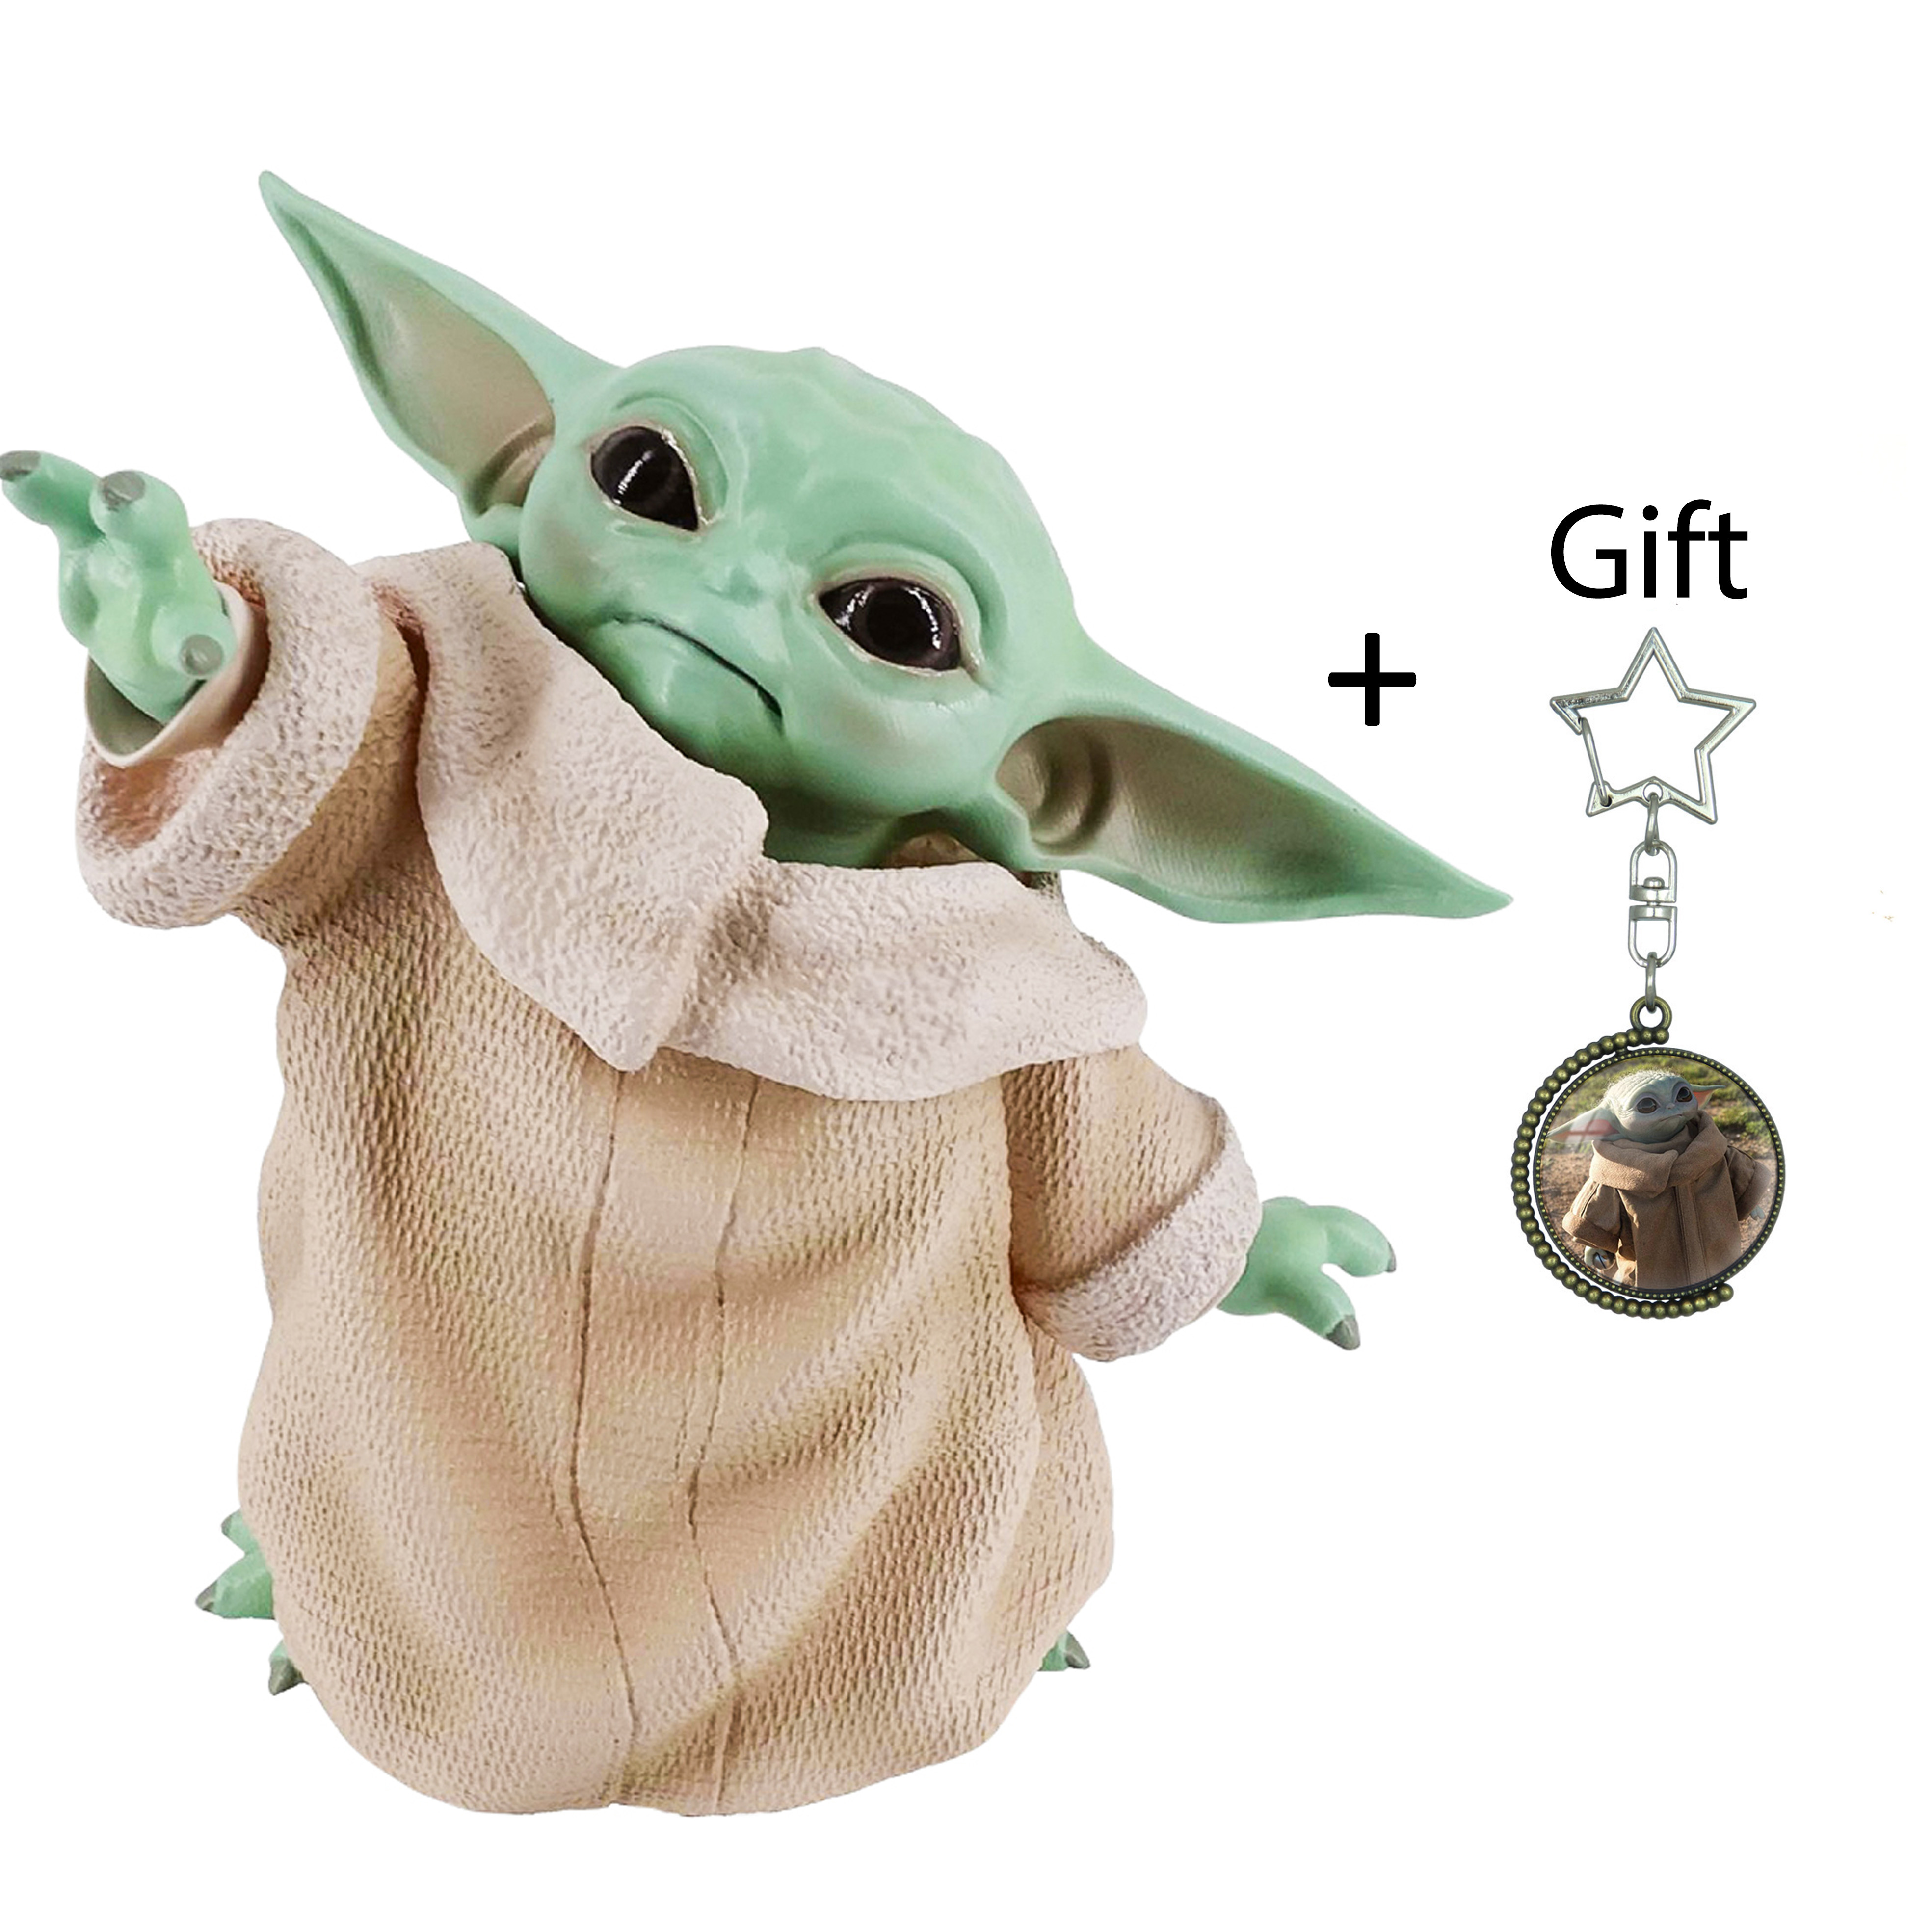 Baby Yoda Collection,6 Inch The Mandalorian The Black Series Collectible with Baby Yoda Keychain